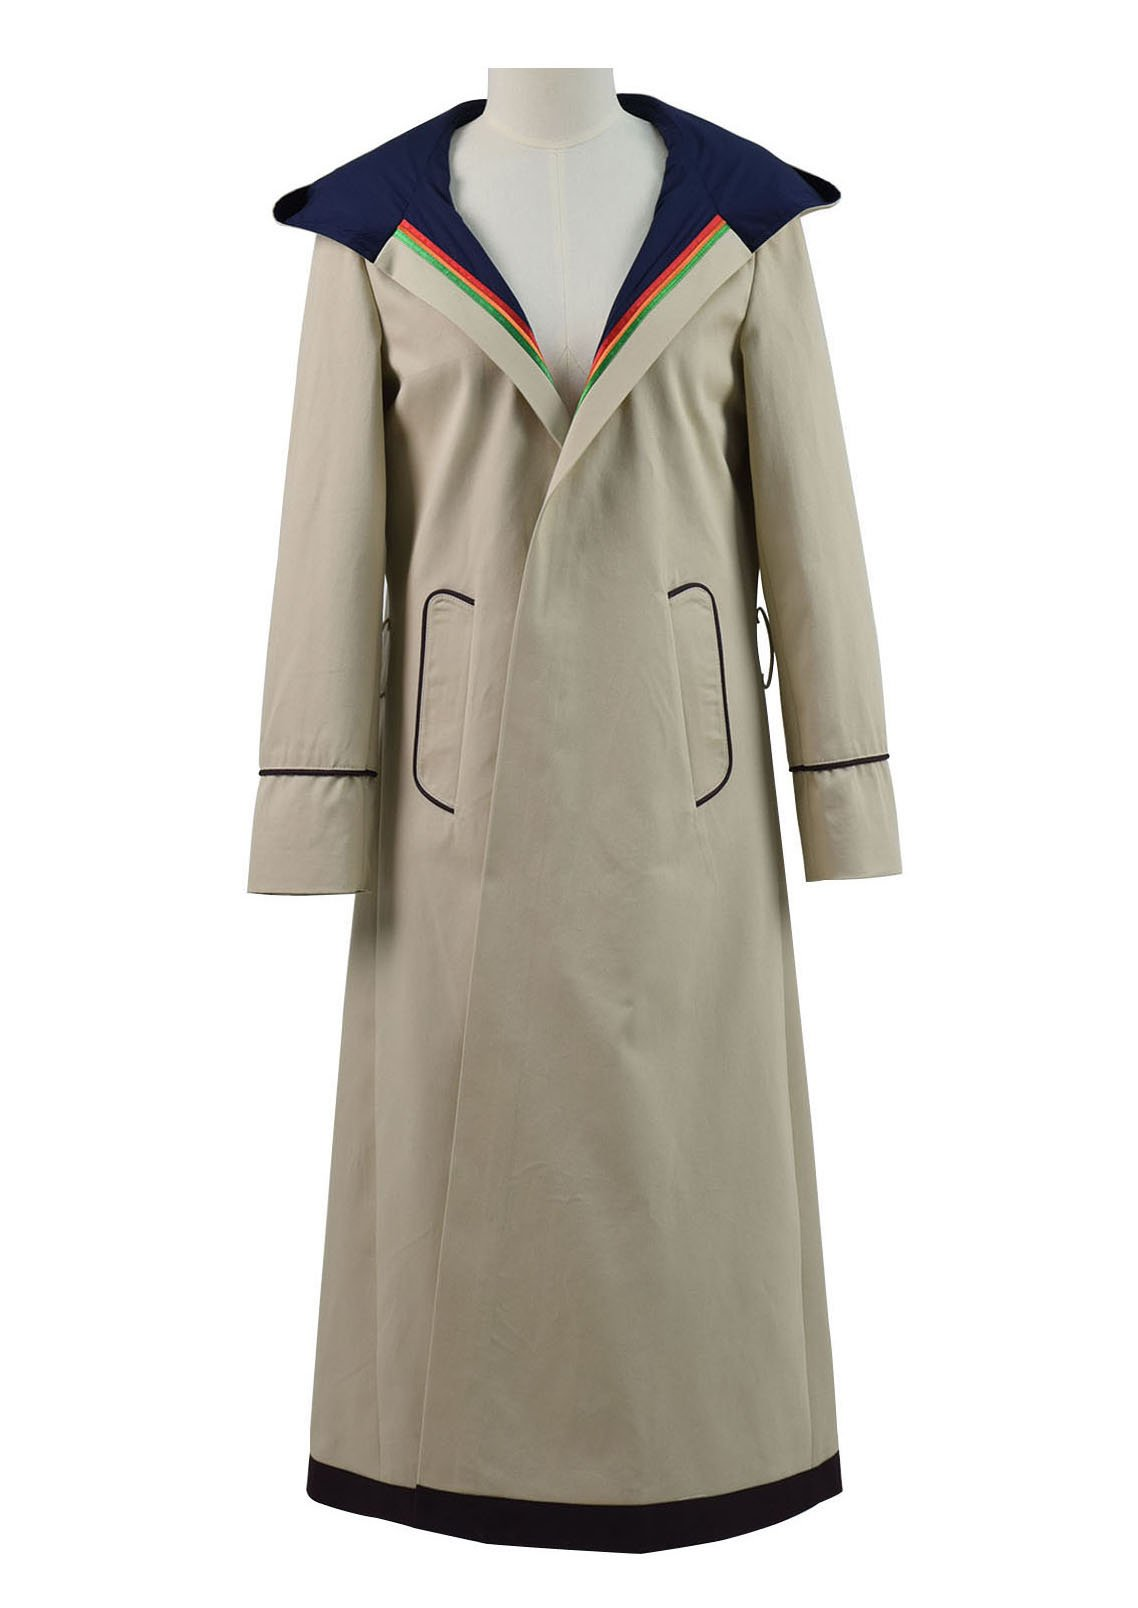 Very Last Shop Classic Sci-Fi TV Series 13th Doctor Costume Women Beige Trench Coat Overcoat (Beige, US Women-L)